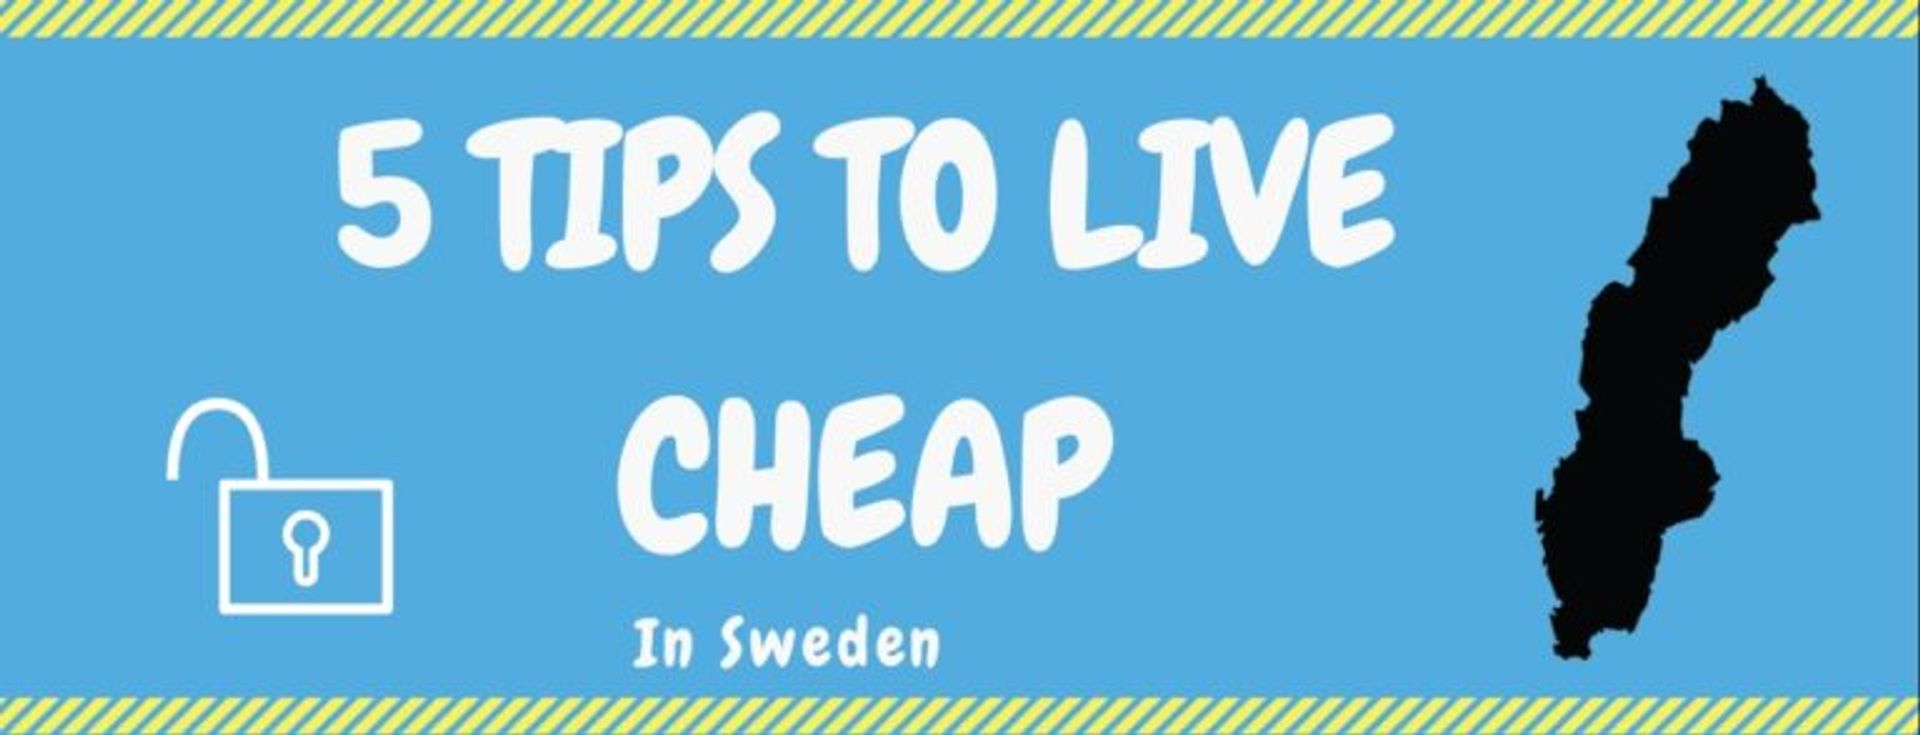 Infographic, text reads '5 tips to live cheap in Sweden'.